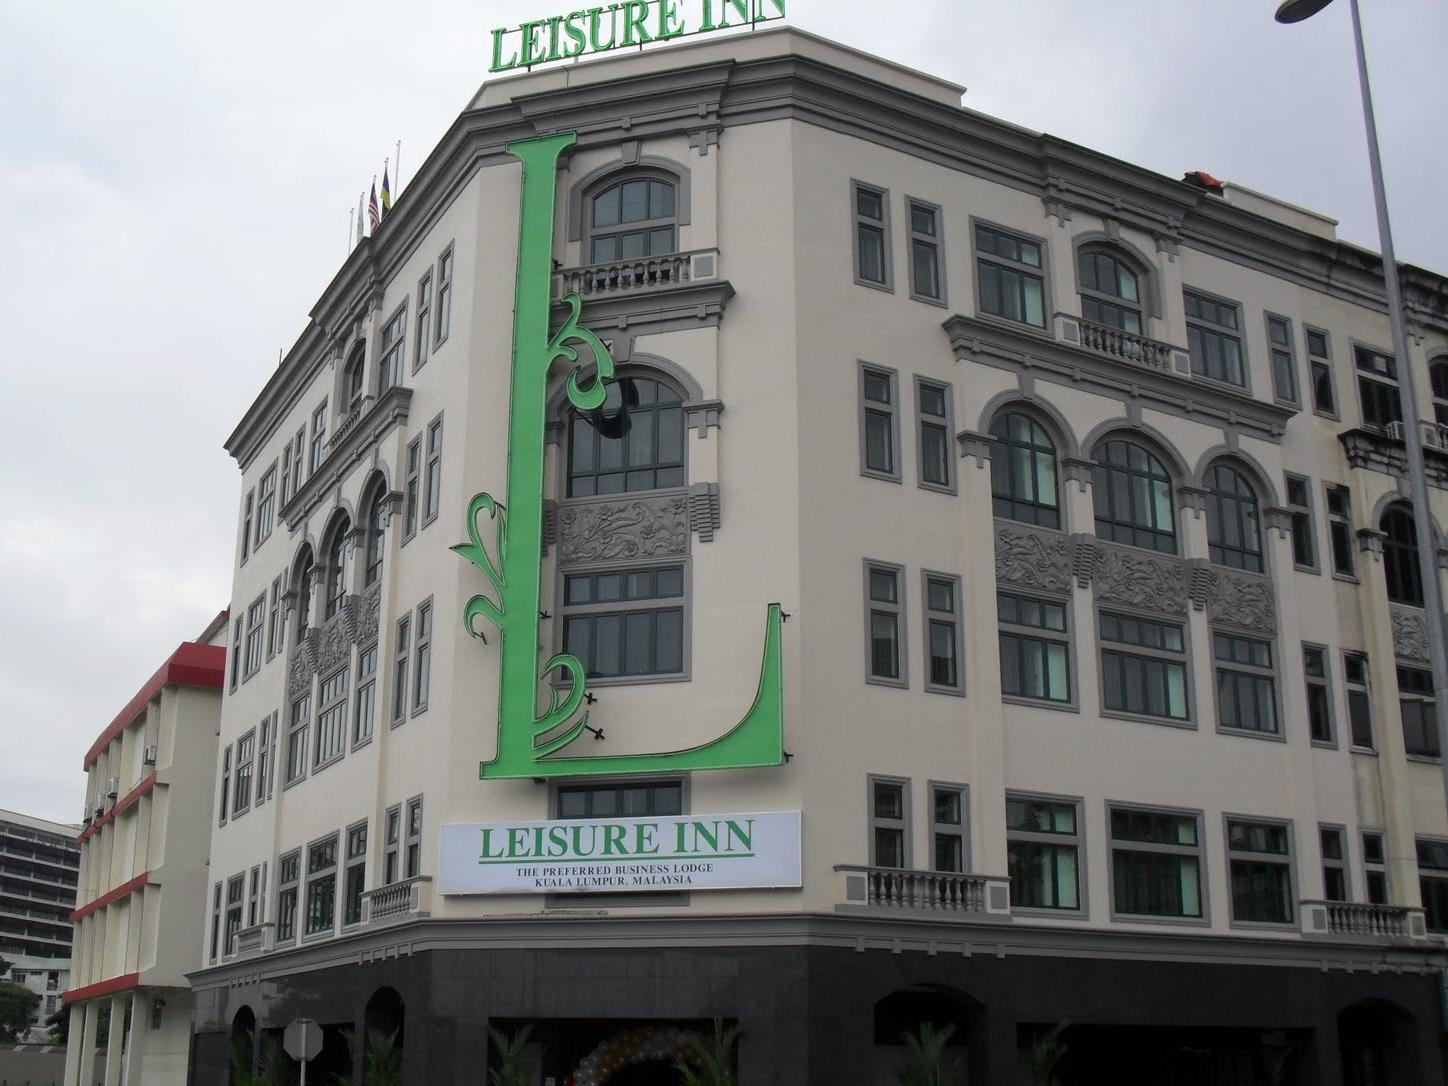 Leisure Inn - The Preferred Business Lodge Kuala Lumpur